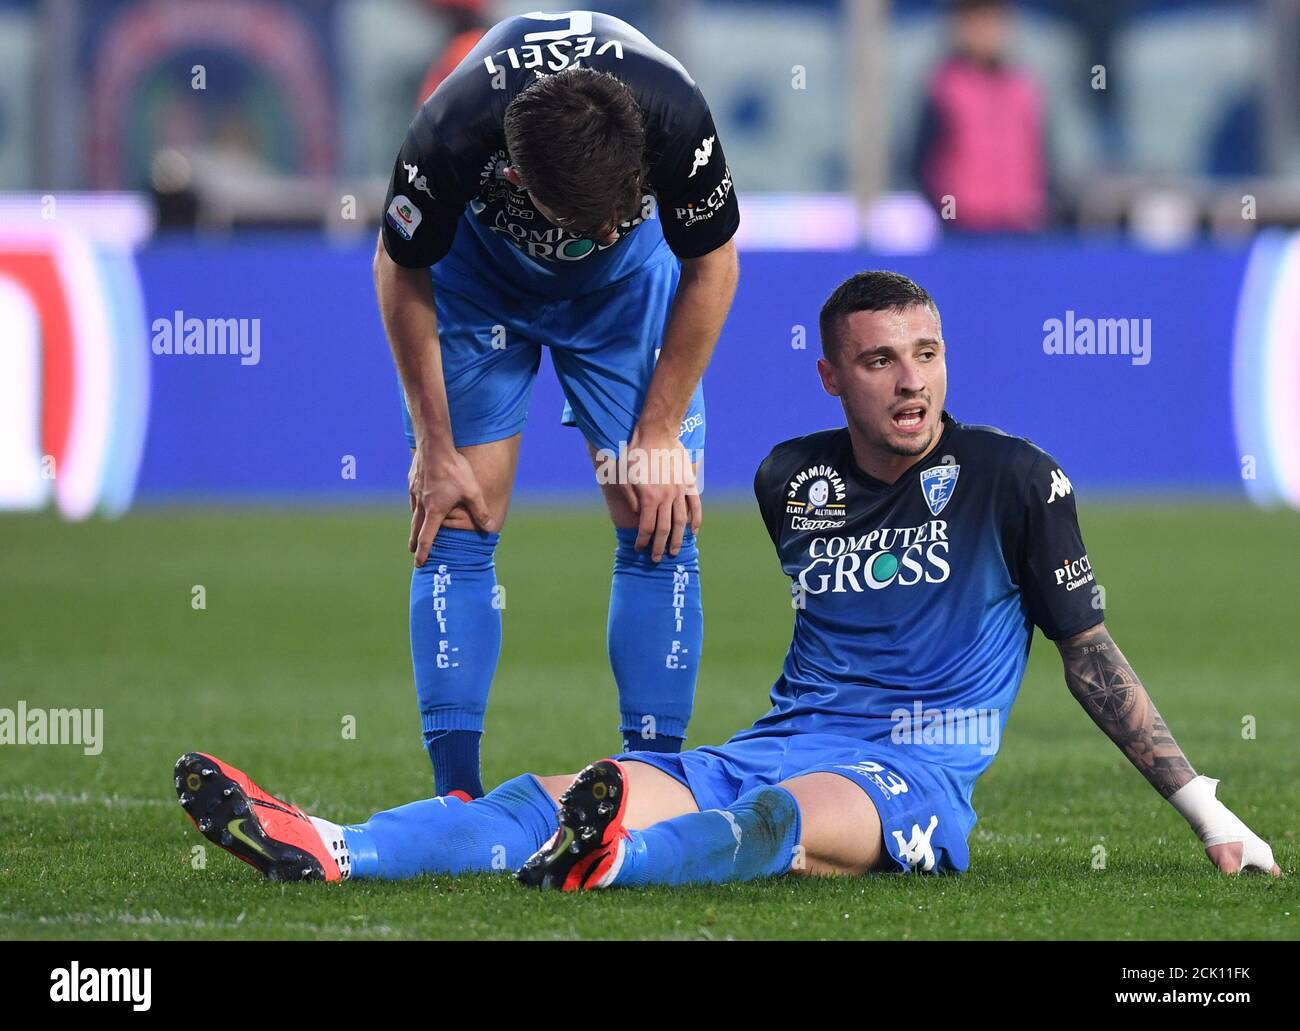 Soccer Football - Serie A - Empoli v Napoli - Stadio Carlo Castellani,  Empoli, Italy - April 3, 2019 Empoli's Rade Krunic and Frederic Veseli  react REUTERS/Jennifer Lorenzini Stock Photo - Alamy